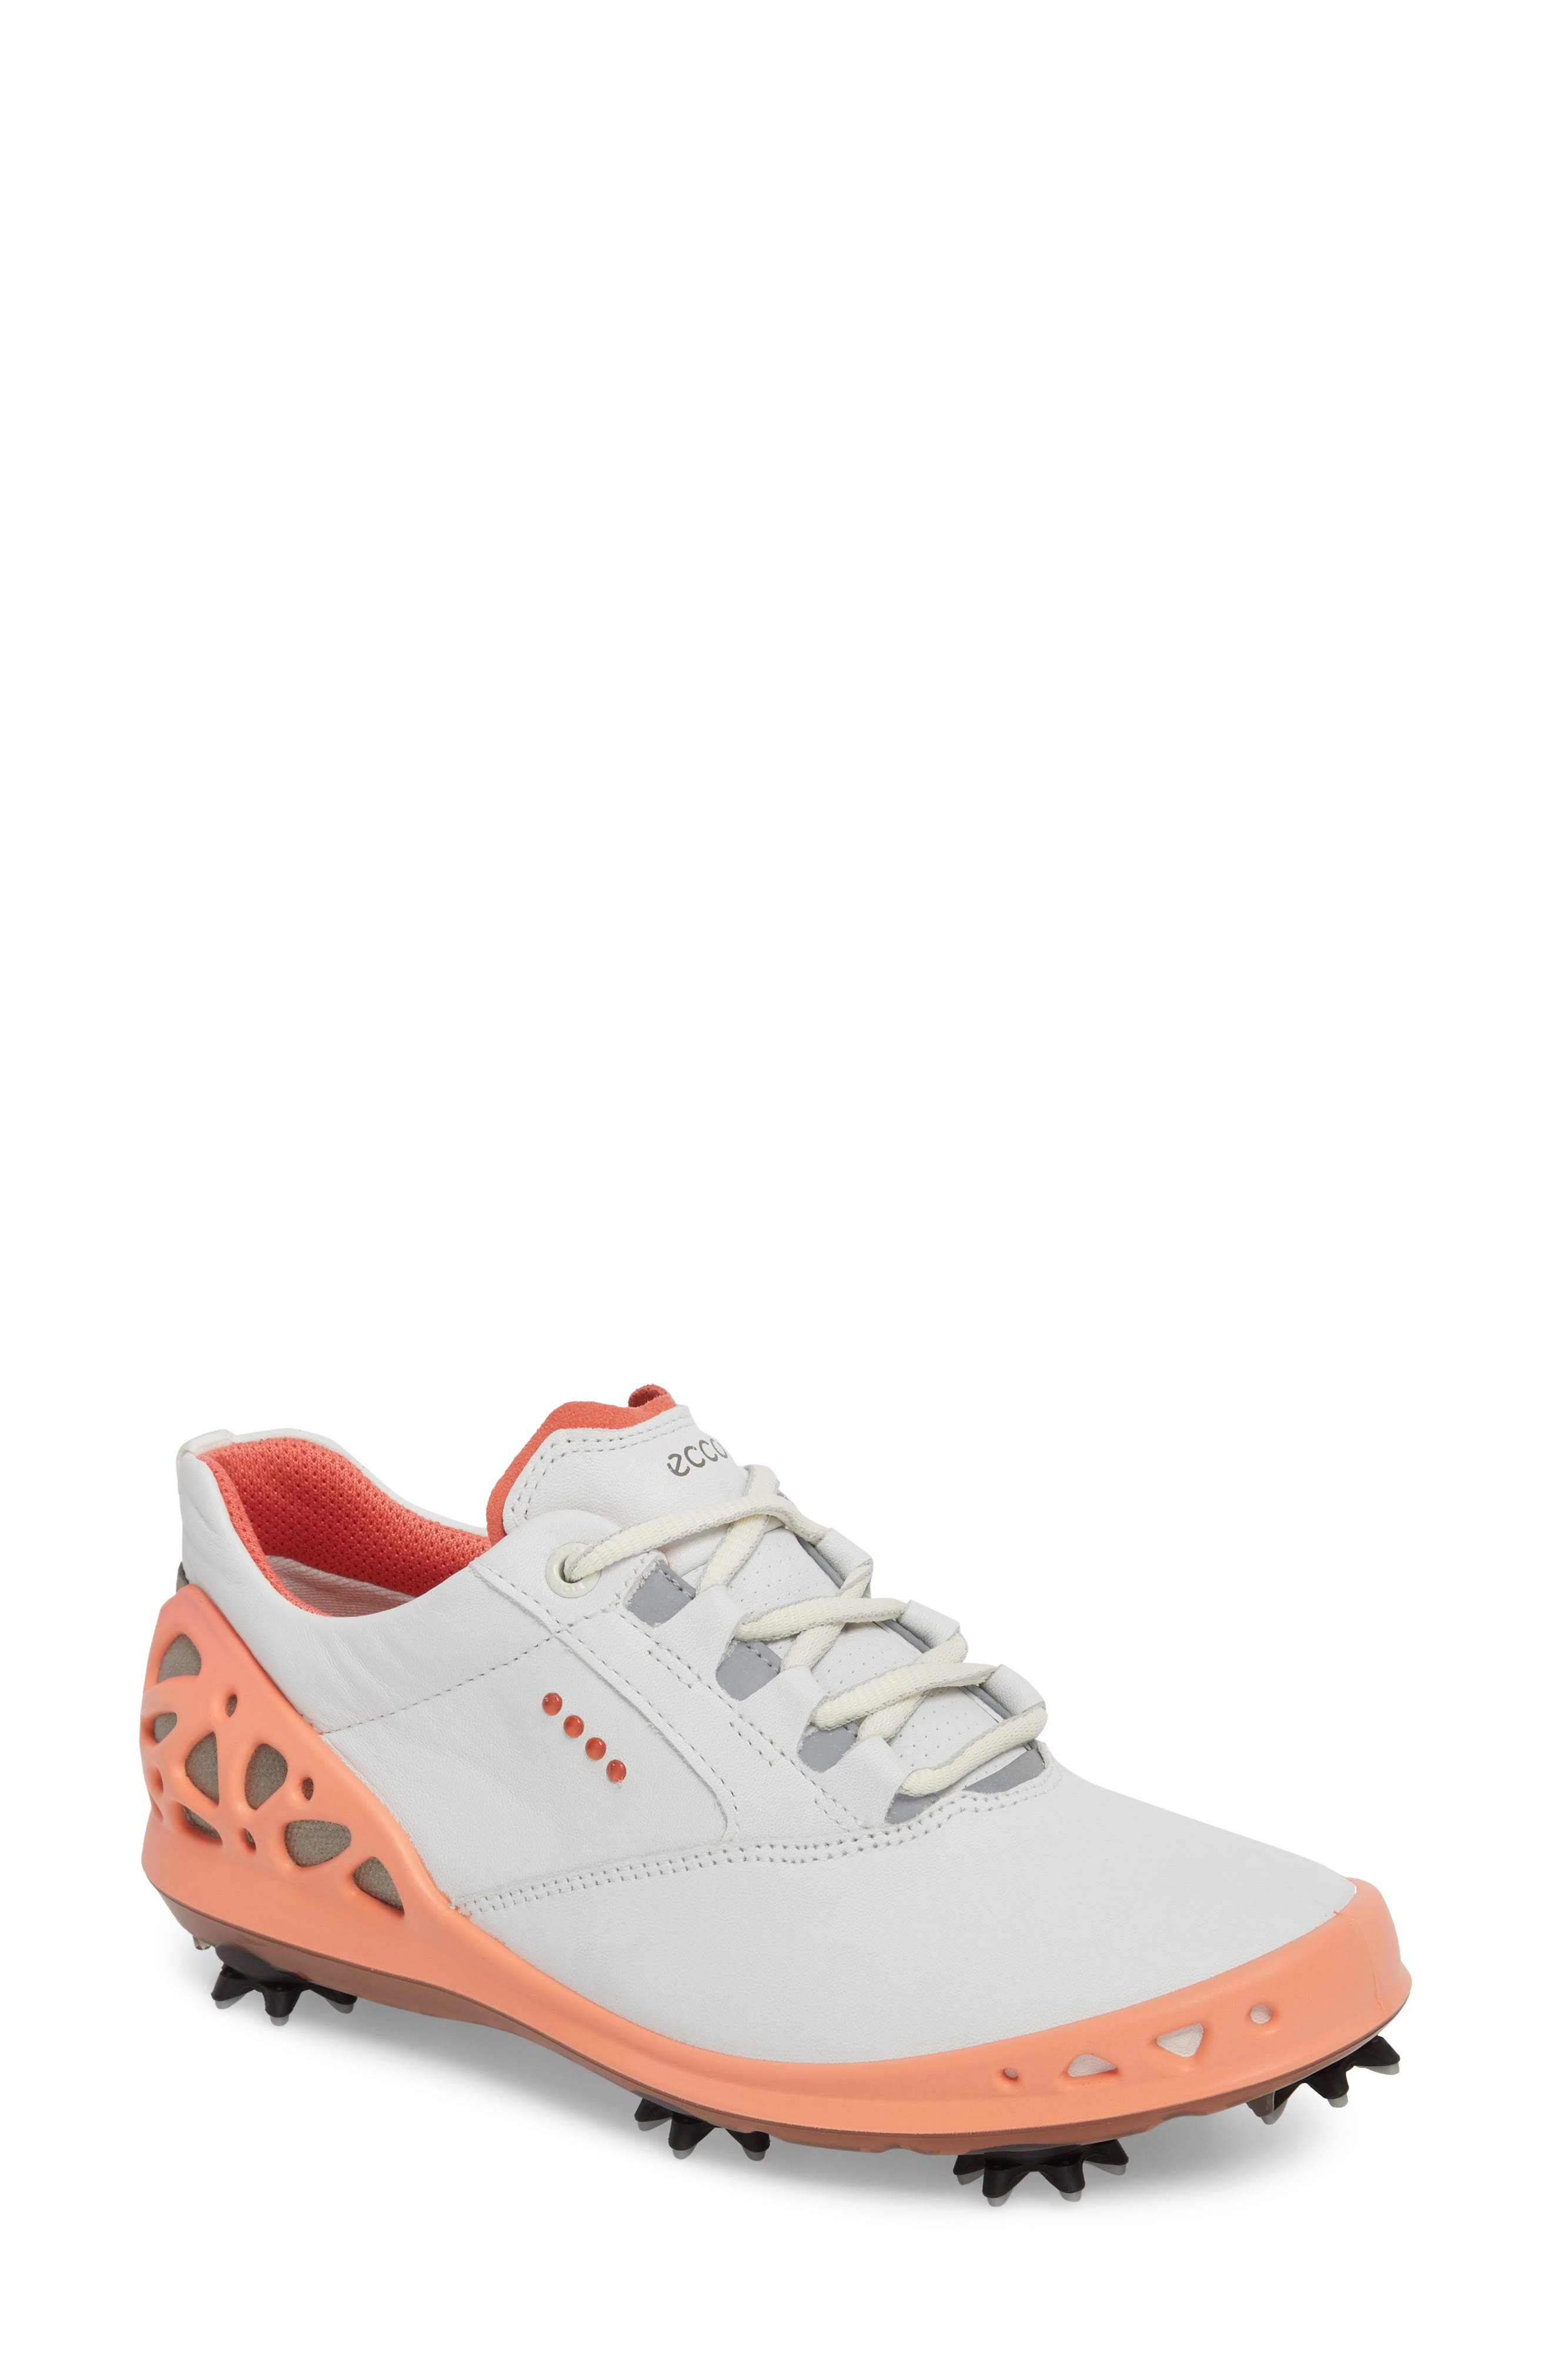 Cage Gore-Tex<sup>®</sup> Golf Shoe,                             Main thumbnail 1, color,                             White/ Coral Leather